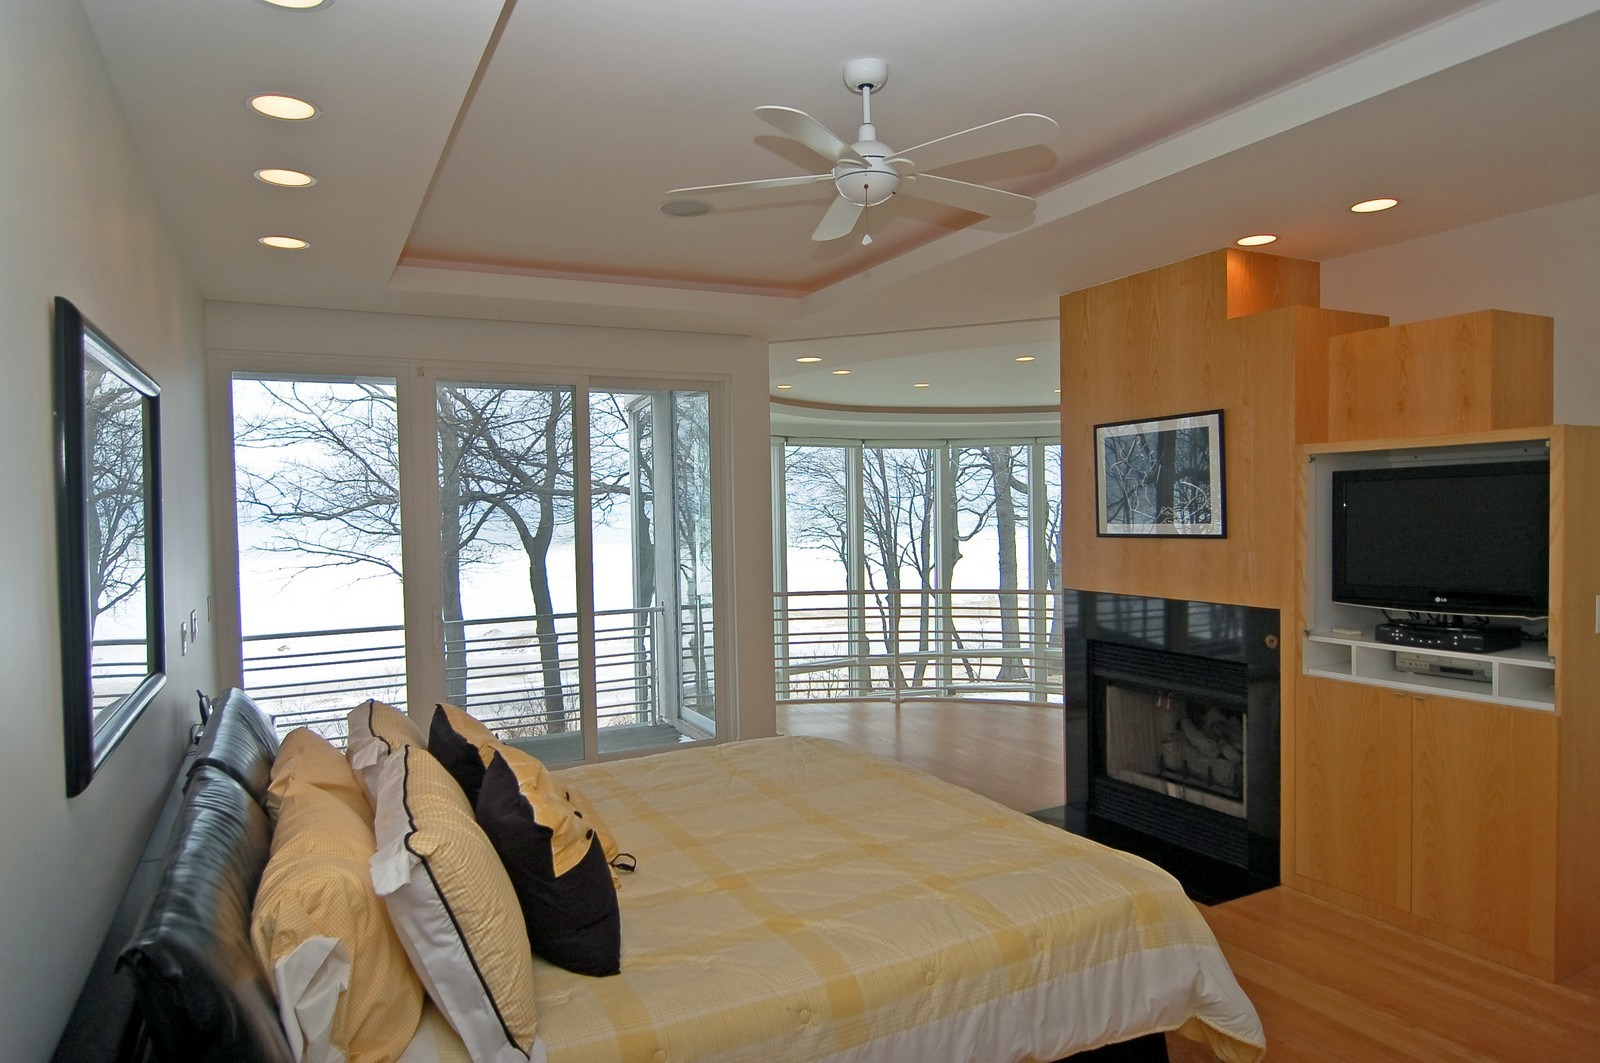 Real Estate Photography - 15930 Lake Ave, Union Pier, MI, 49129 - Master Bedroom